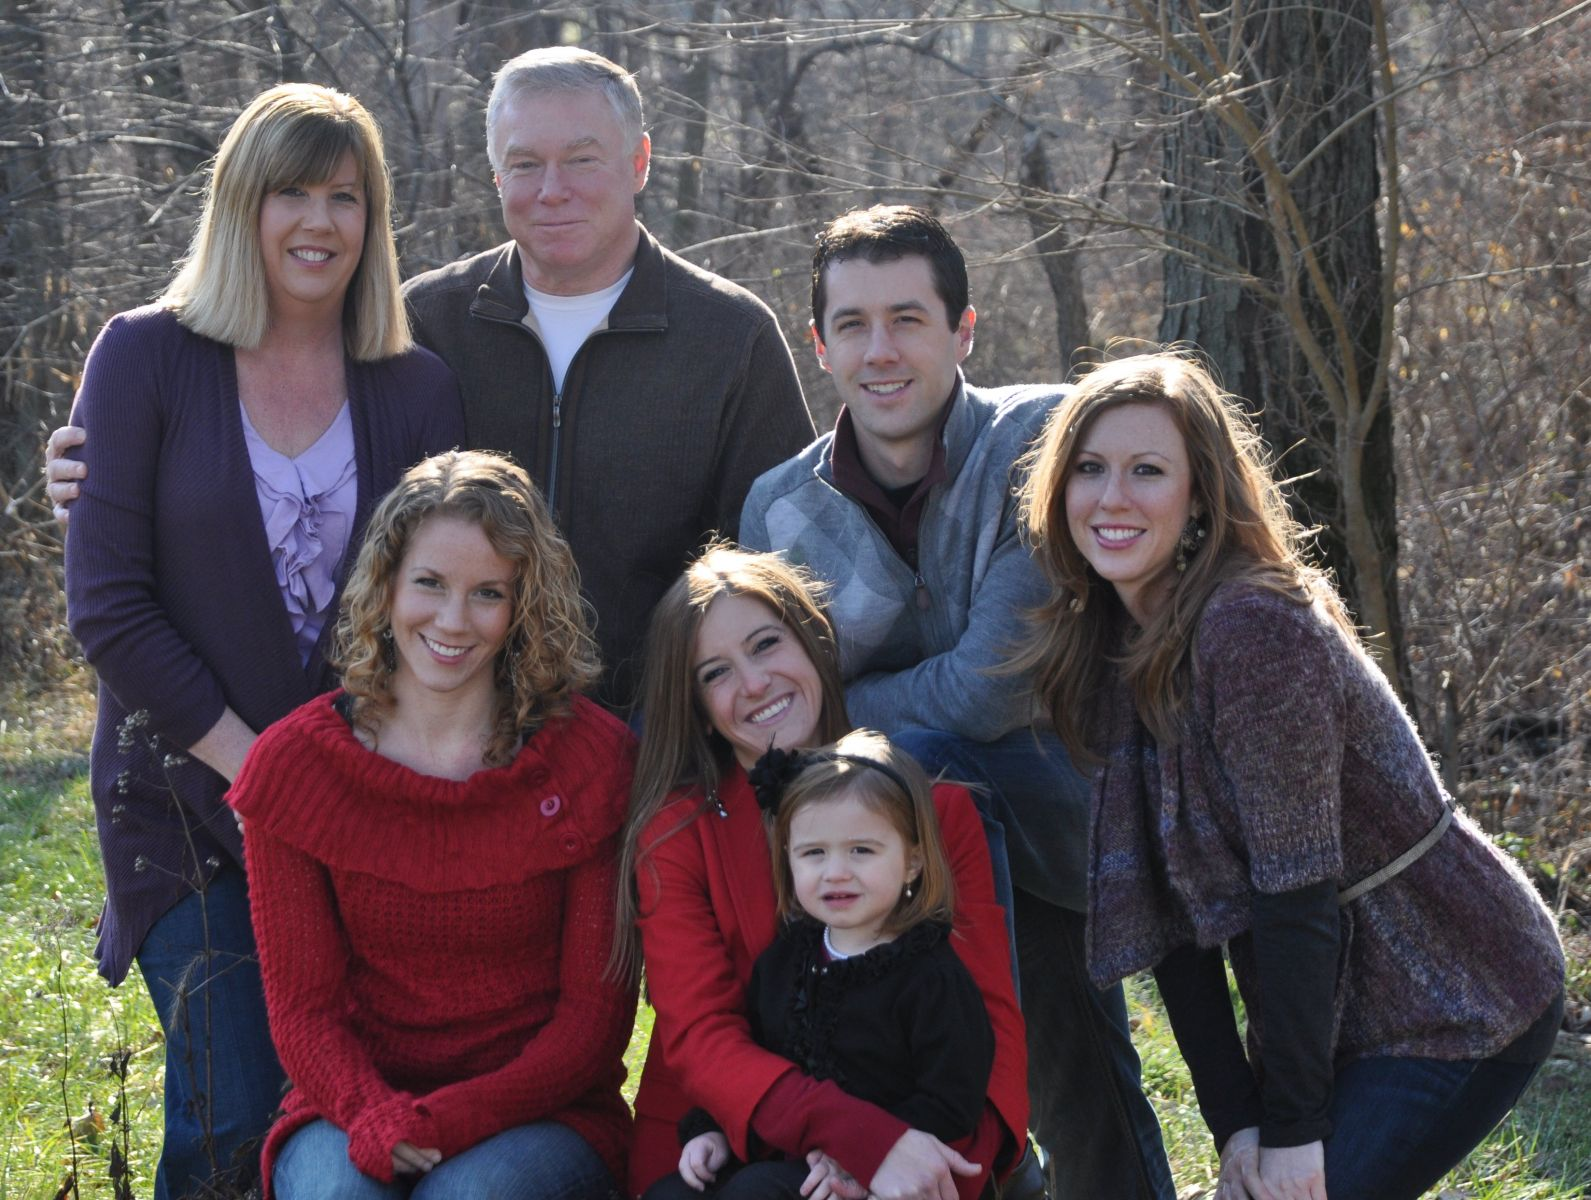 Dr. Dawe Family | Dentist in Granville, IL